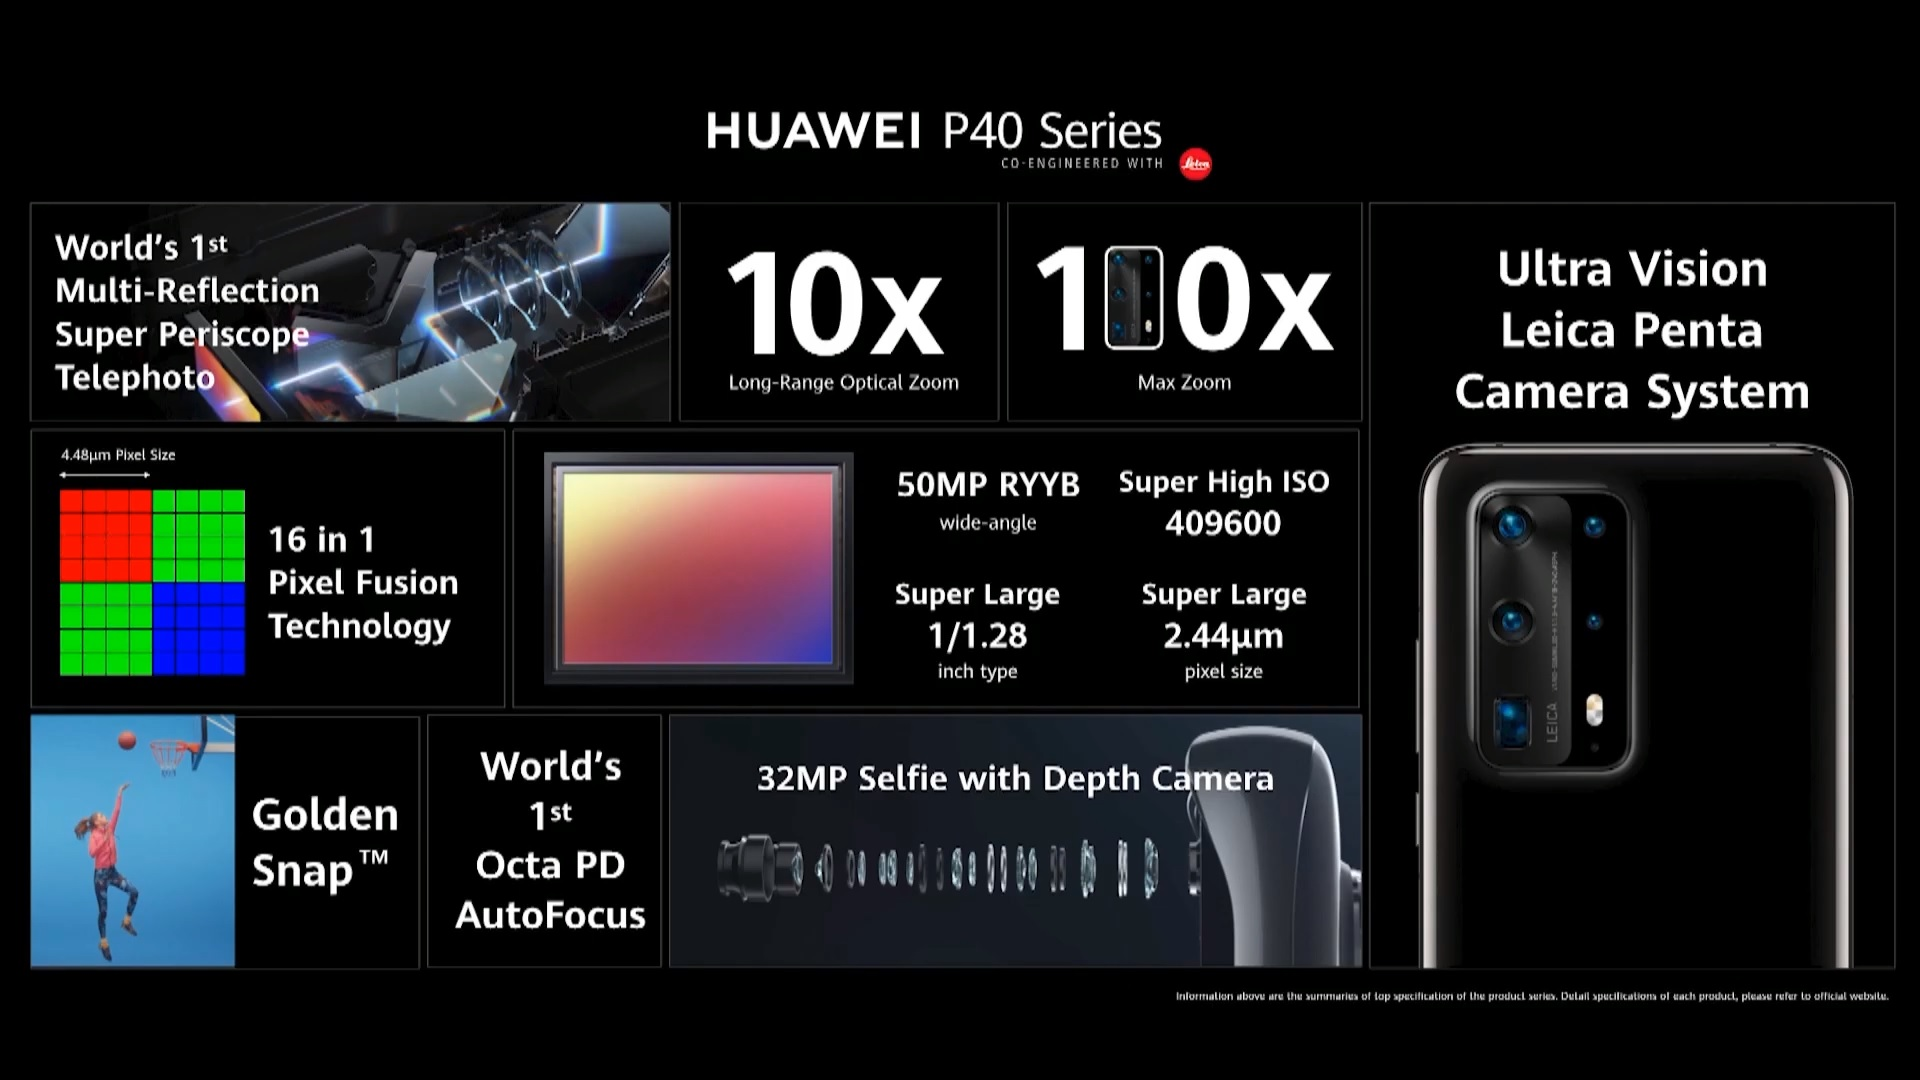 Huawei P40 series camera